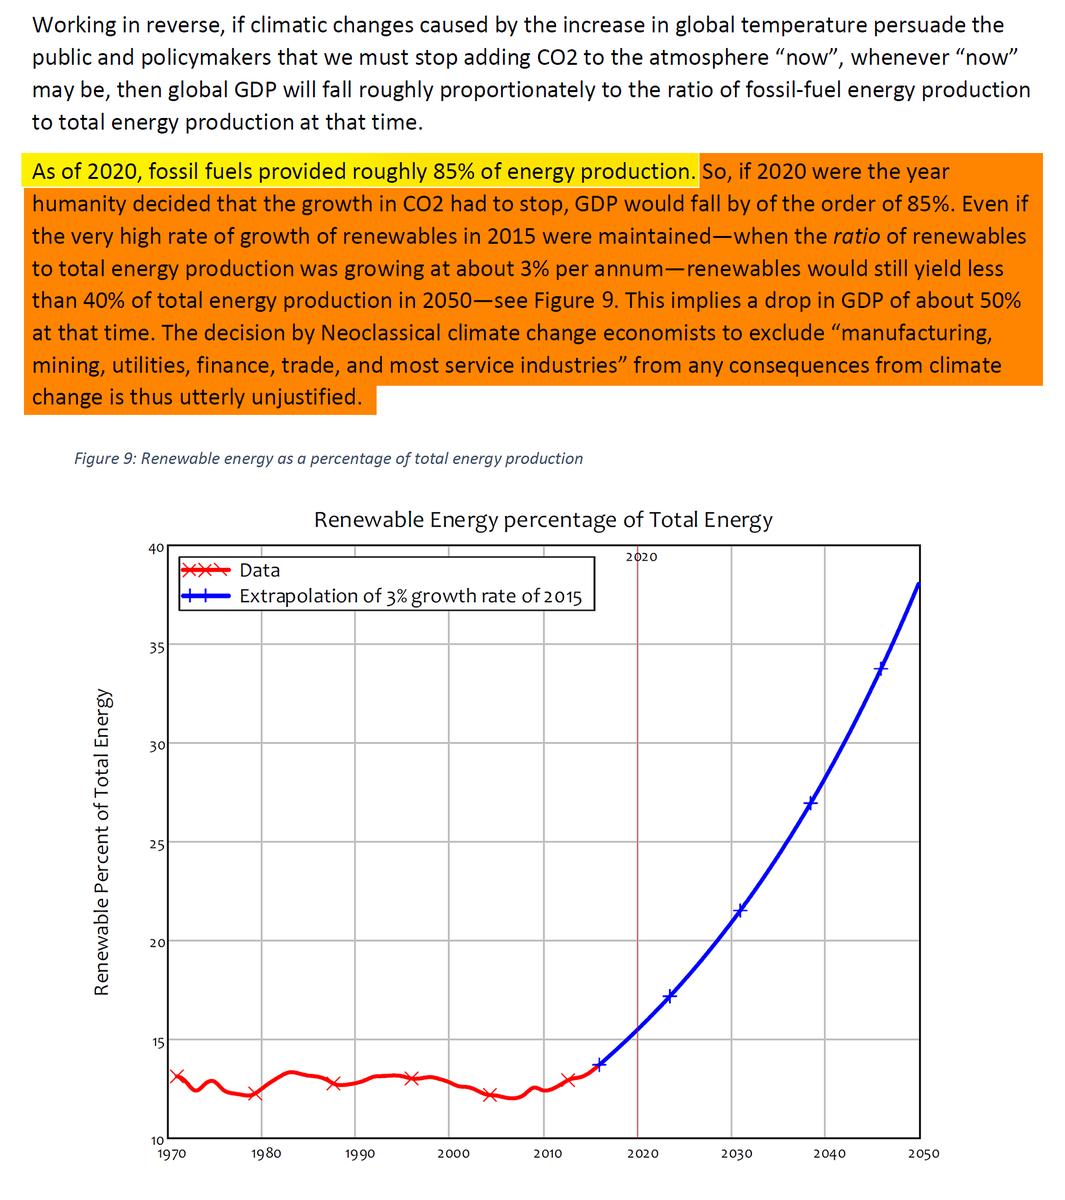 31/44 So simplified, if we were to want to stop emissions today because of our concern for climate change, GDP would drop by 85%. If the growth of the 𝘴𝘩𝘢𝘳𝘦 of renewables would persist at 3% until 2050 and we then stop emissions, GDP would still drop by 50%.